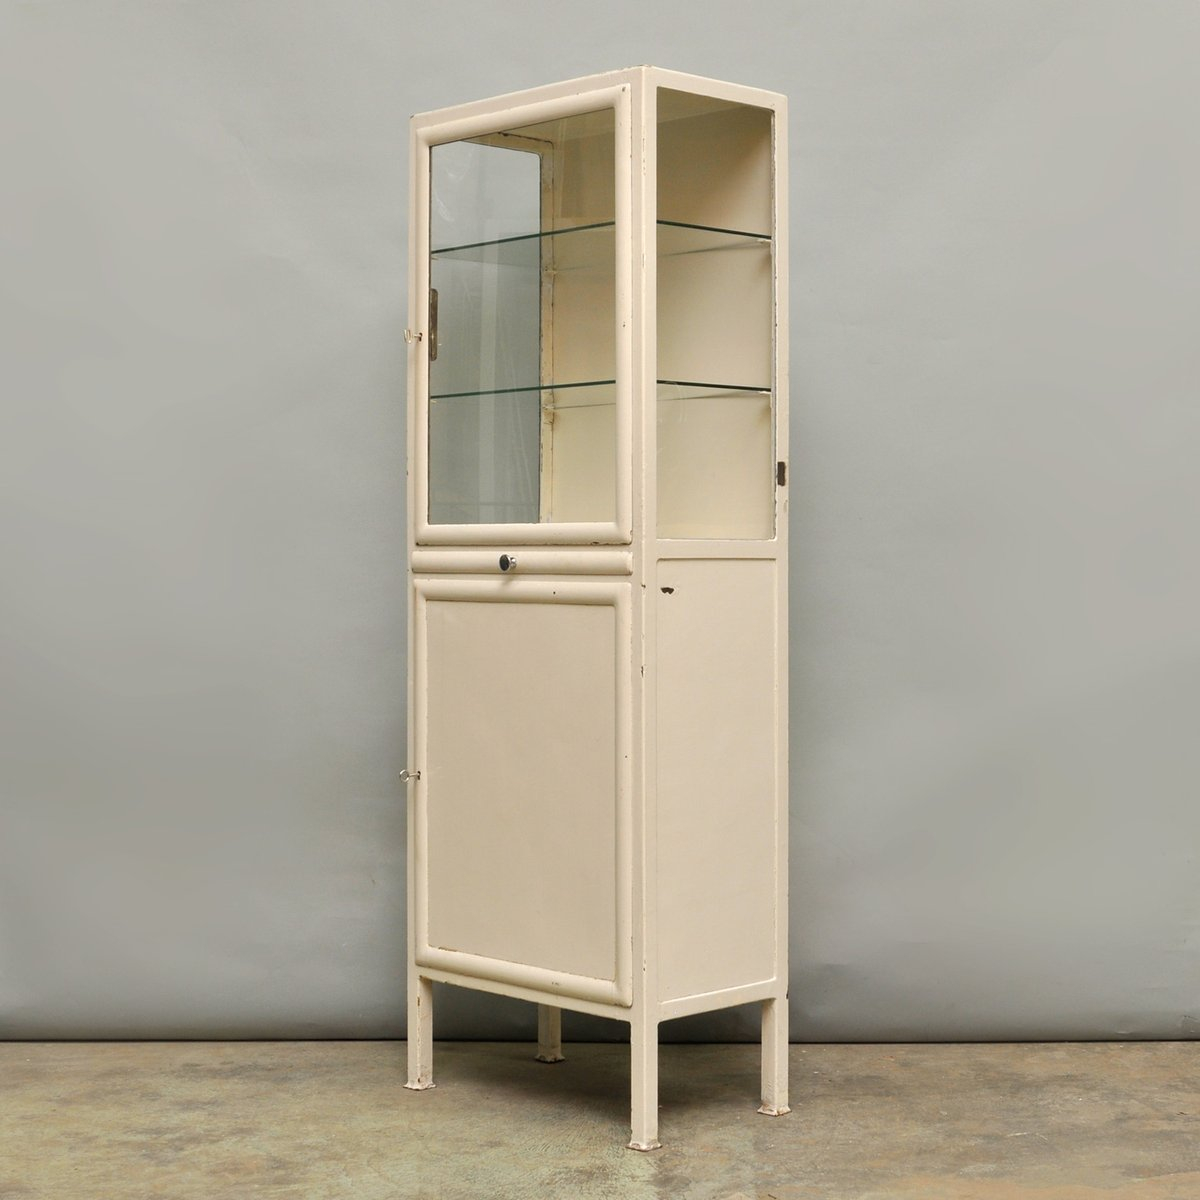 Beau Vintage Medical Cabinet In Iron U0026 Glass, 1940s